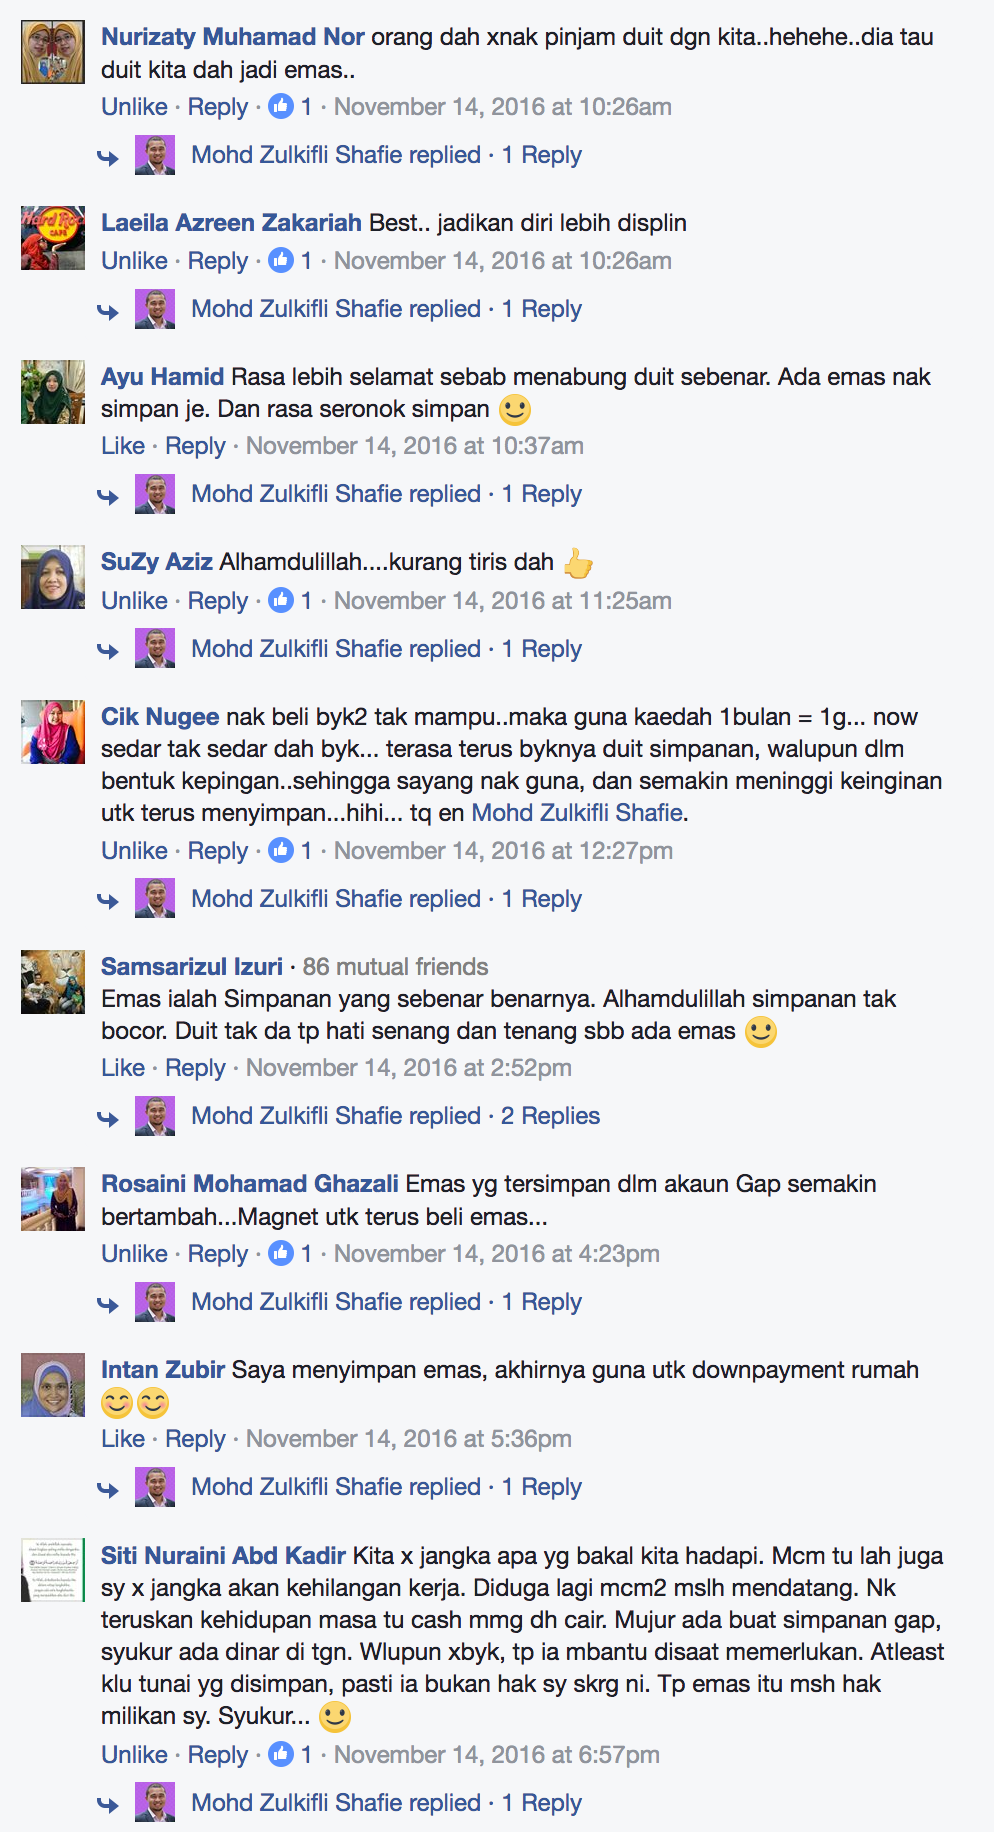 FB Screen Shot testimoni penyimpan emas 5